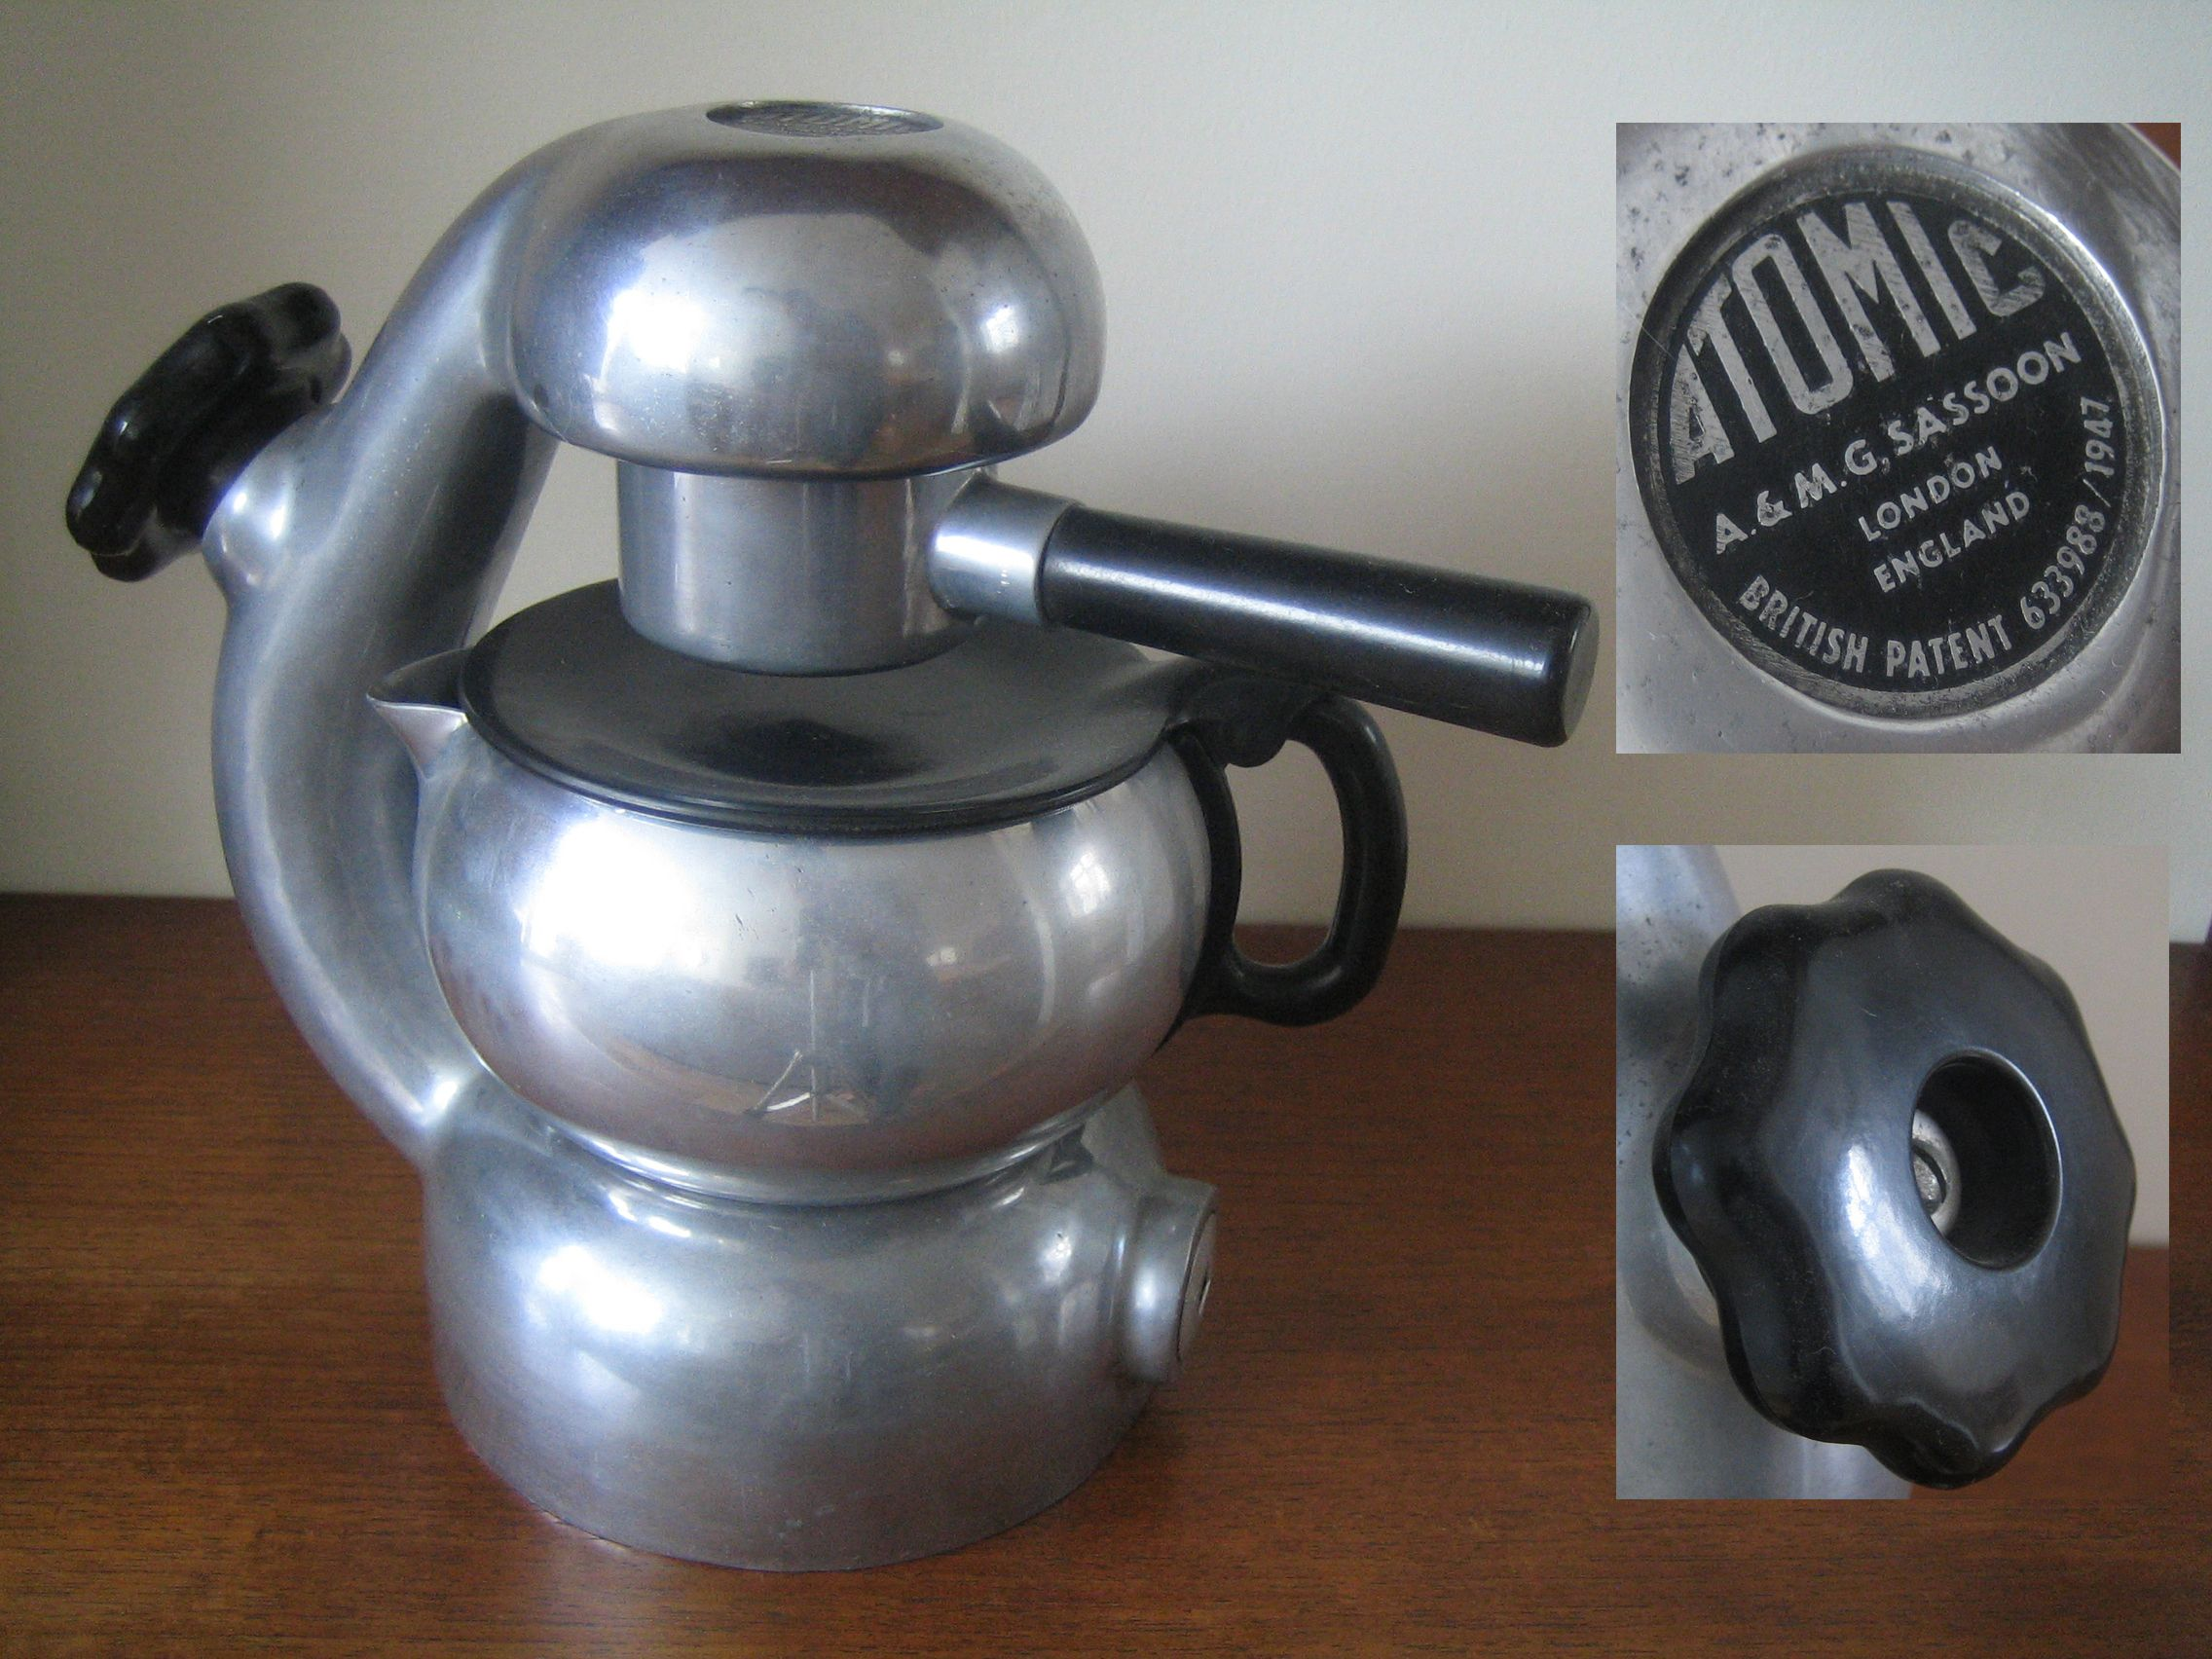 """1950 s stove top """"Atomic"""" coffee maker by A & M G Sassoon"""